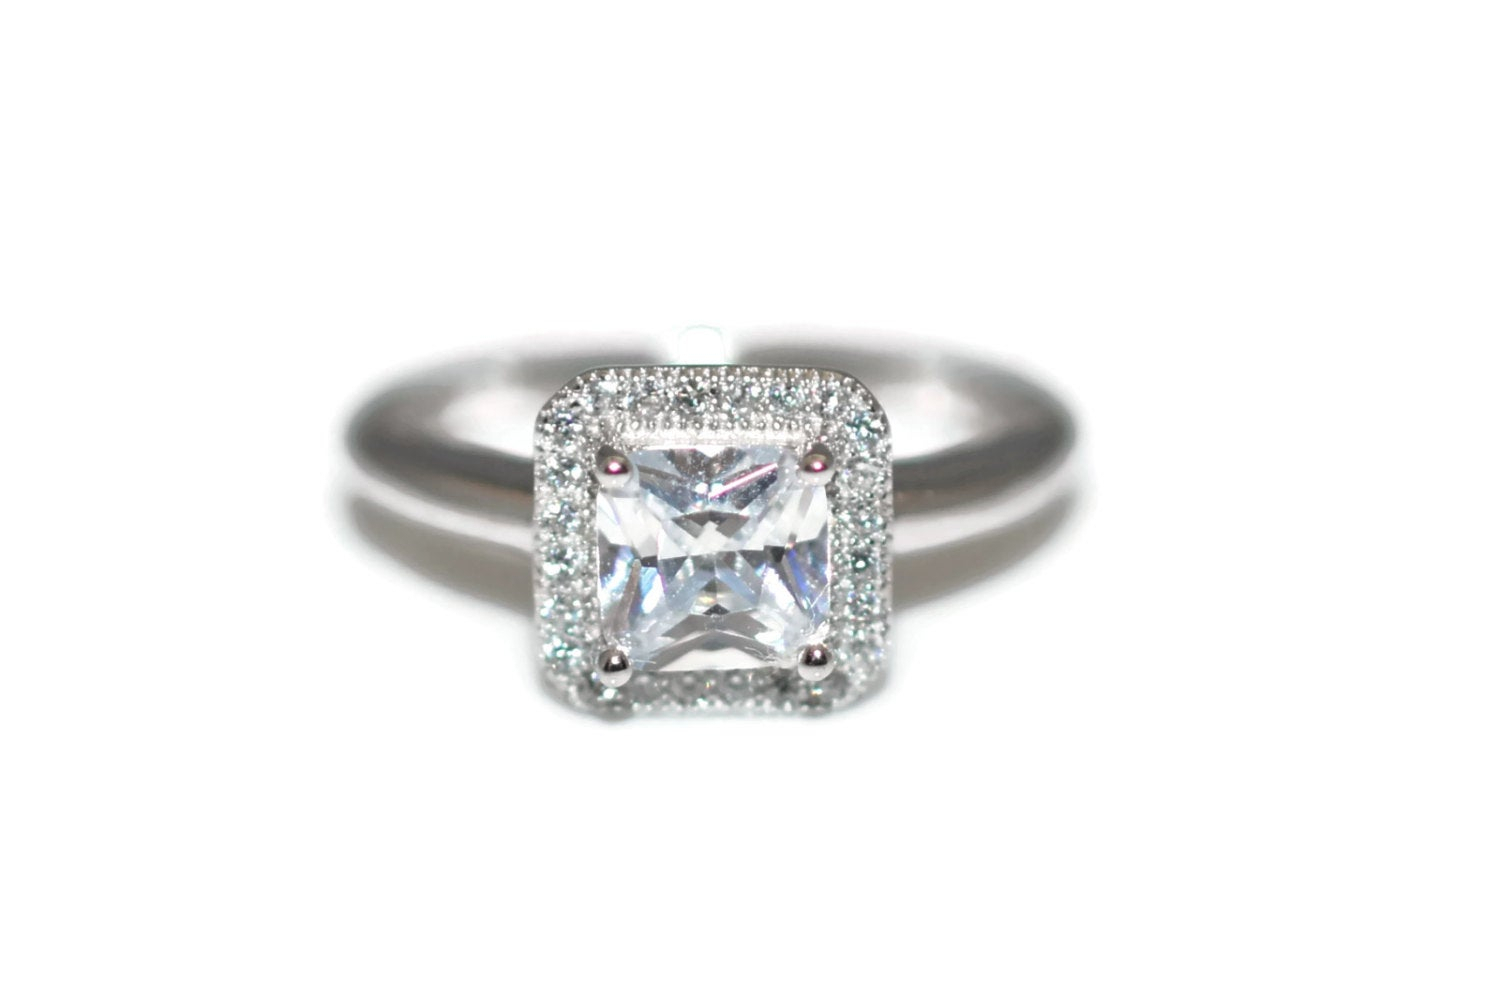 Size 6 Halo Sterling Silver Clear Cz Ring Size 6 Rhodium Plated – Sterling Silver Clear Square Halo Cubic Zirconia Ring Rhodium Plated Pertaining To Most Recent Sparkling Square Halo Rings (Gallery 20 of 25)